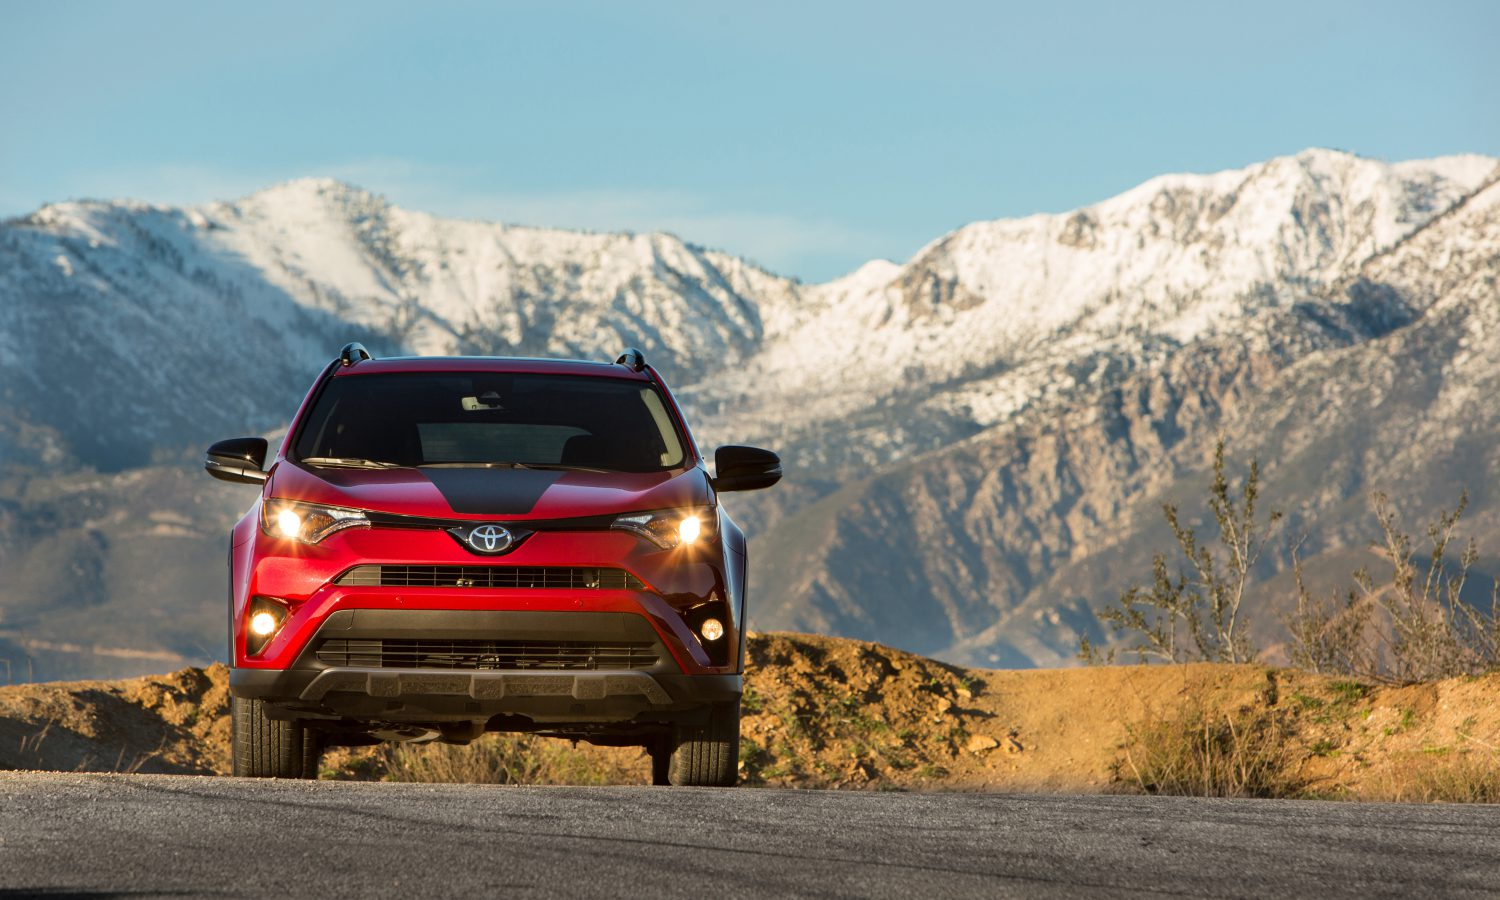 Priced for Adventure! All-New 2018 RAV4 Adventure Grade Starts at $27,700